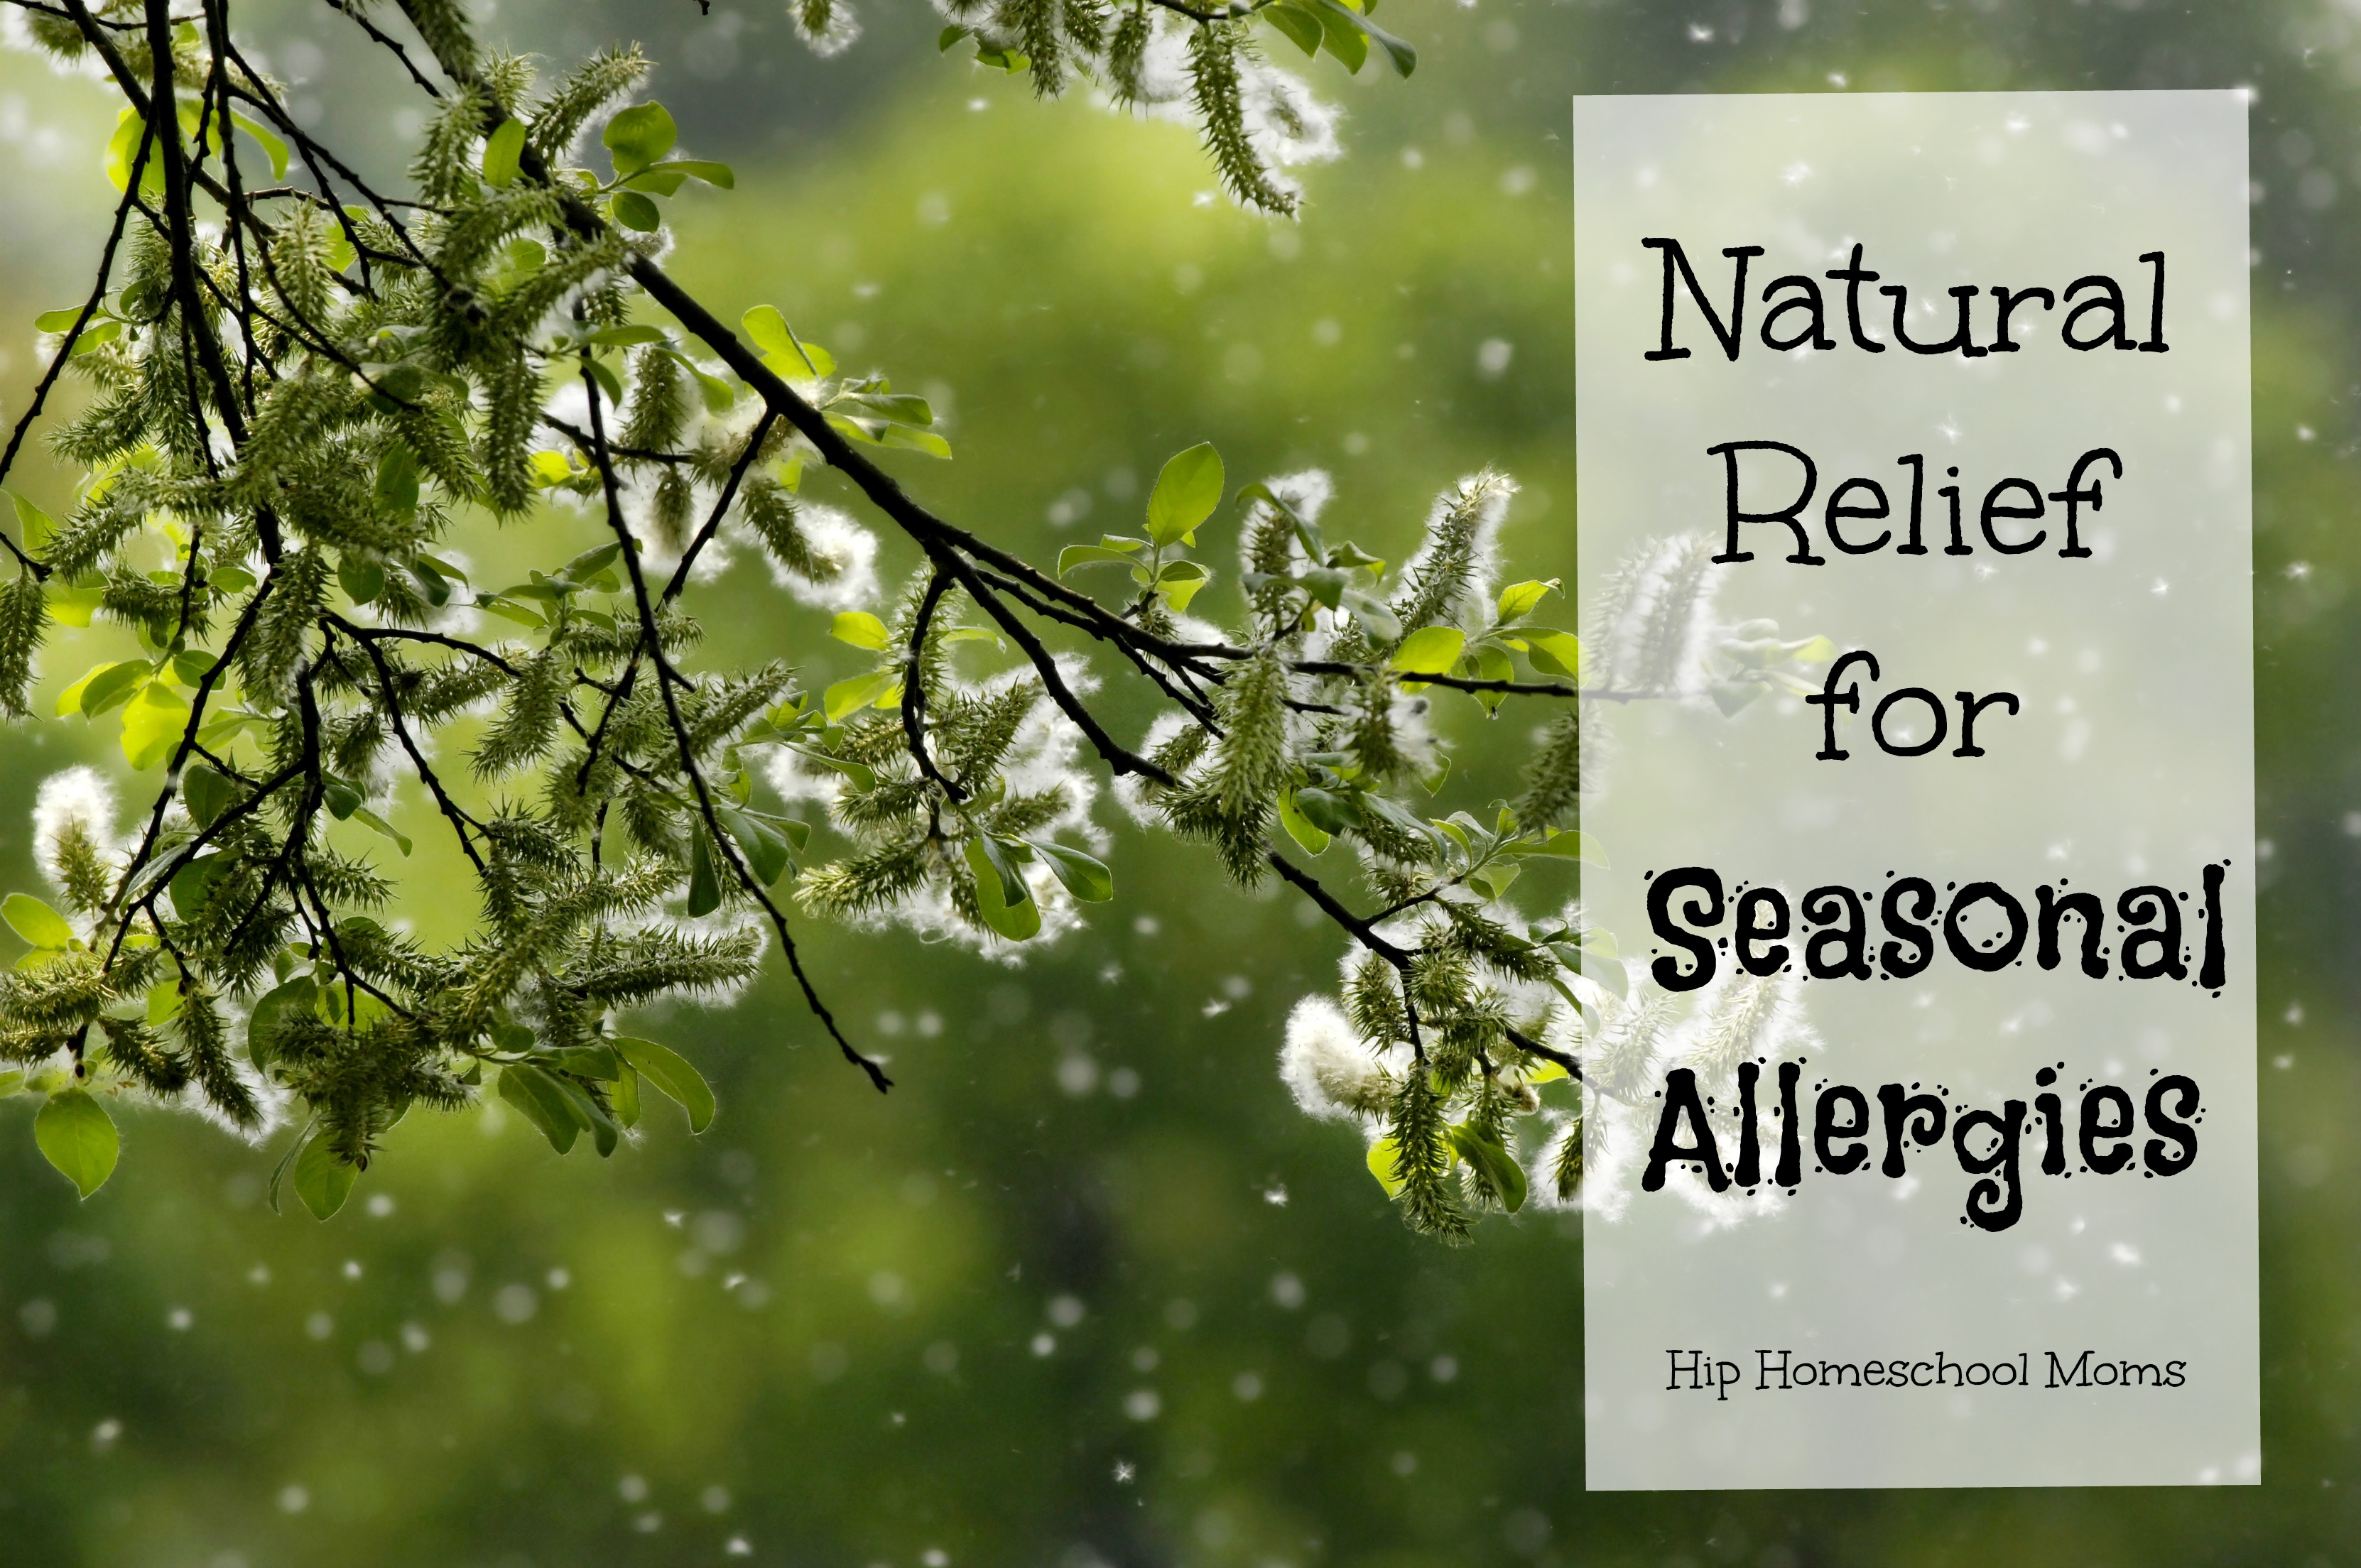 Natural Relief for Seasonal Allergies